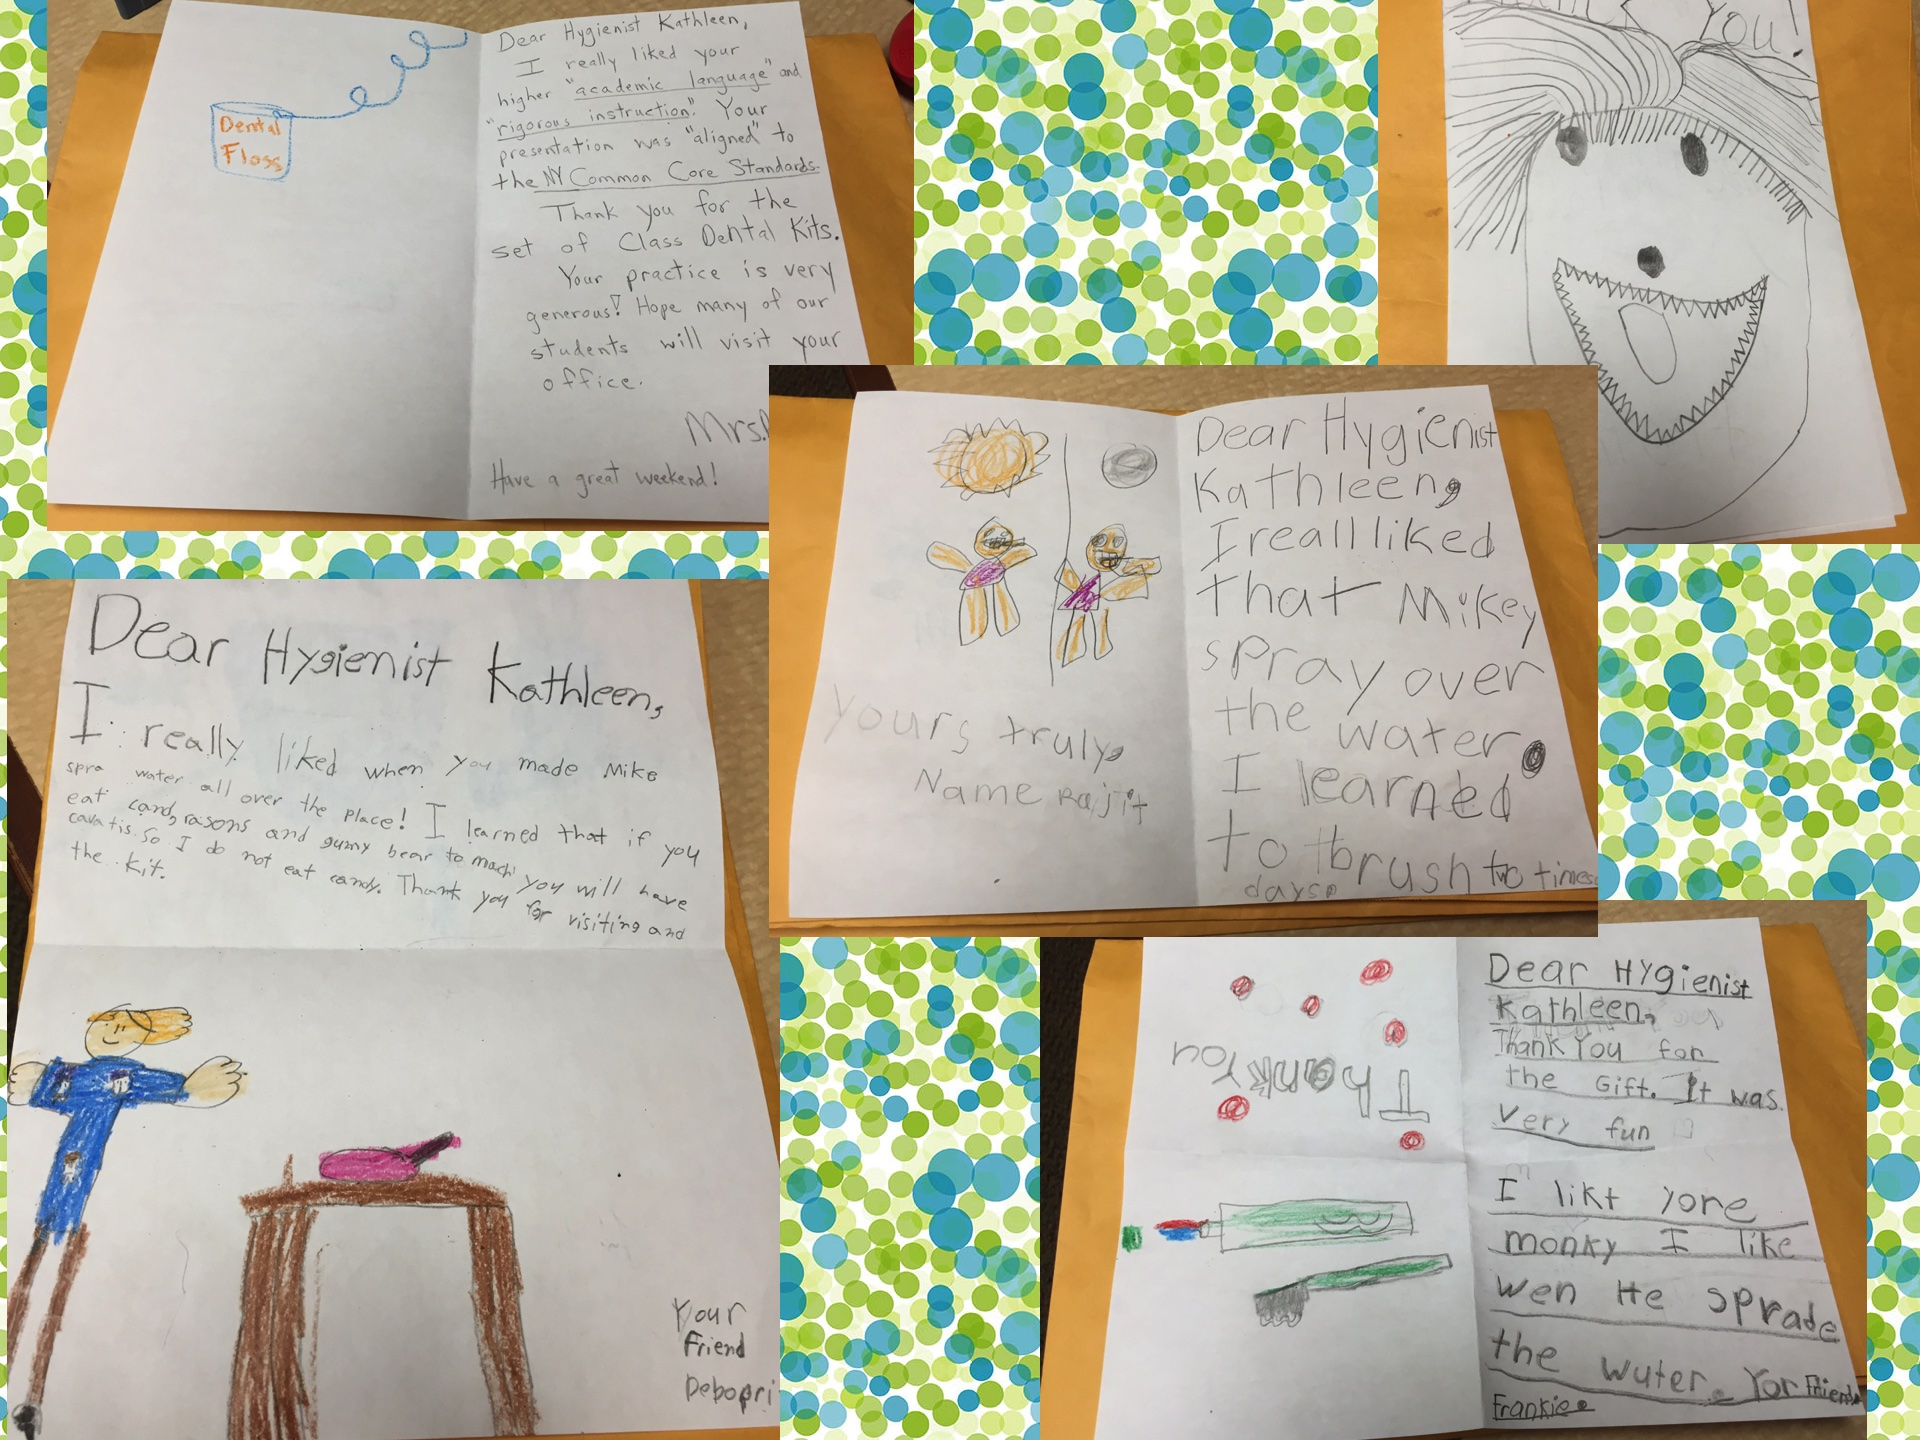 Thank you letters to hygienist Kathleen from children at P.S. 99 in Kew Gardens.